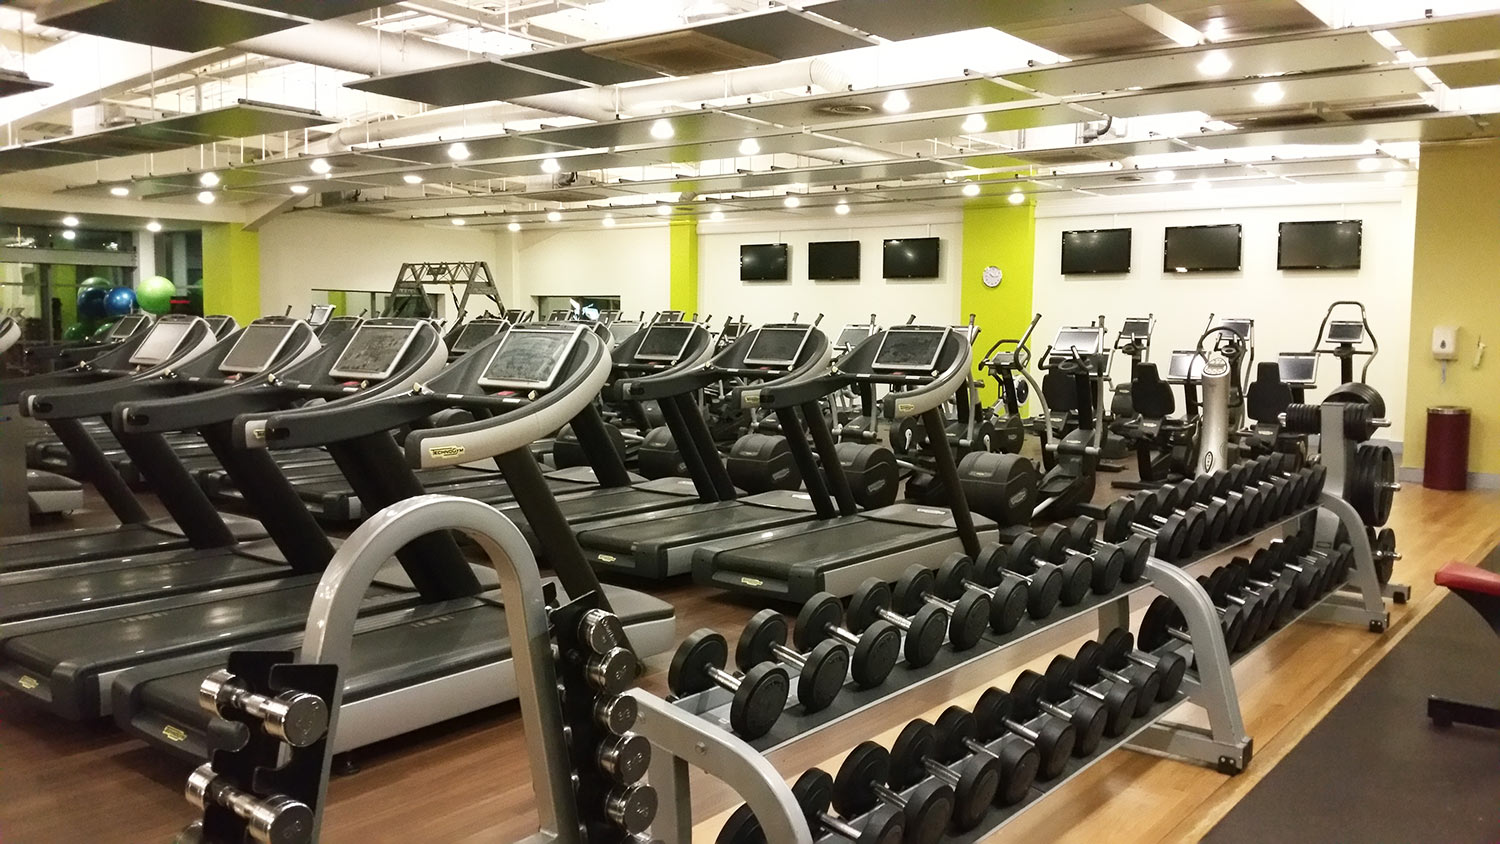 Jacuzzi Pool Opening Kit Gym In Weston Super Mare Fitness And Wellbeing Nuffield